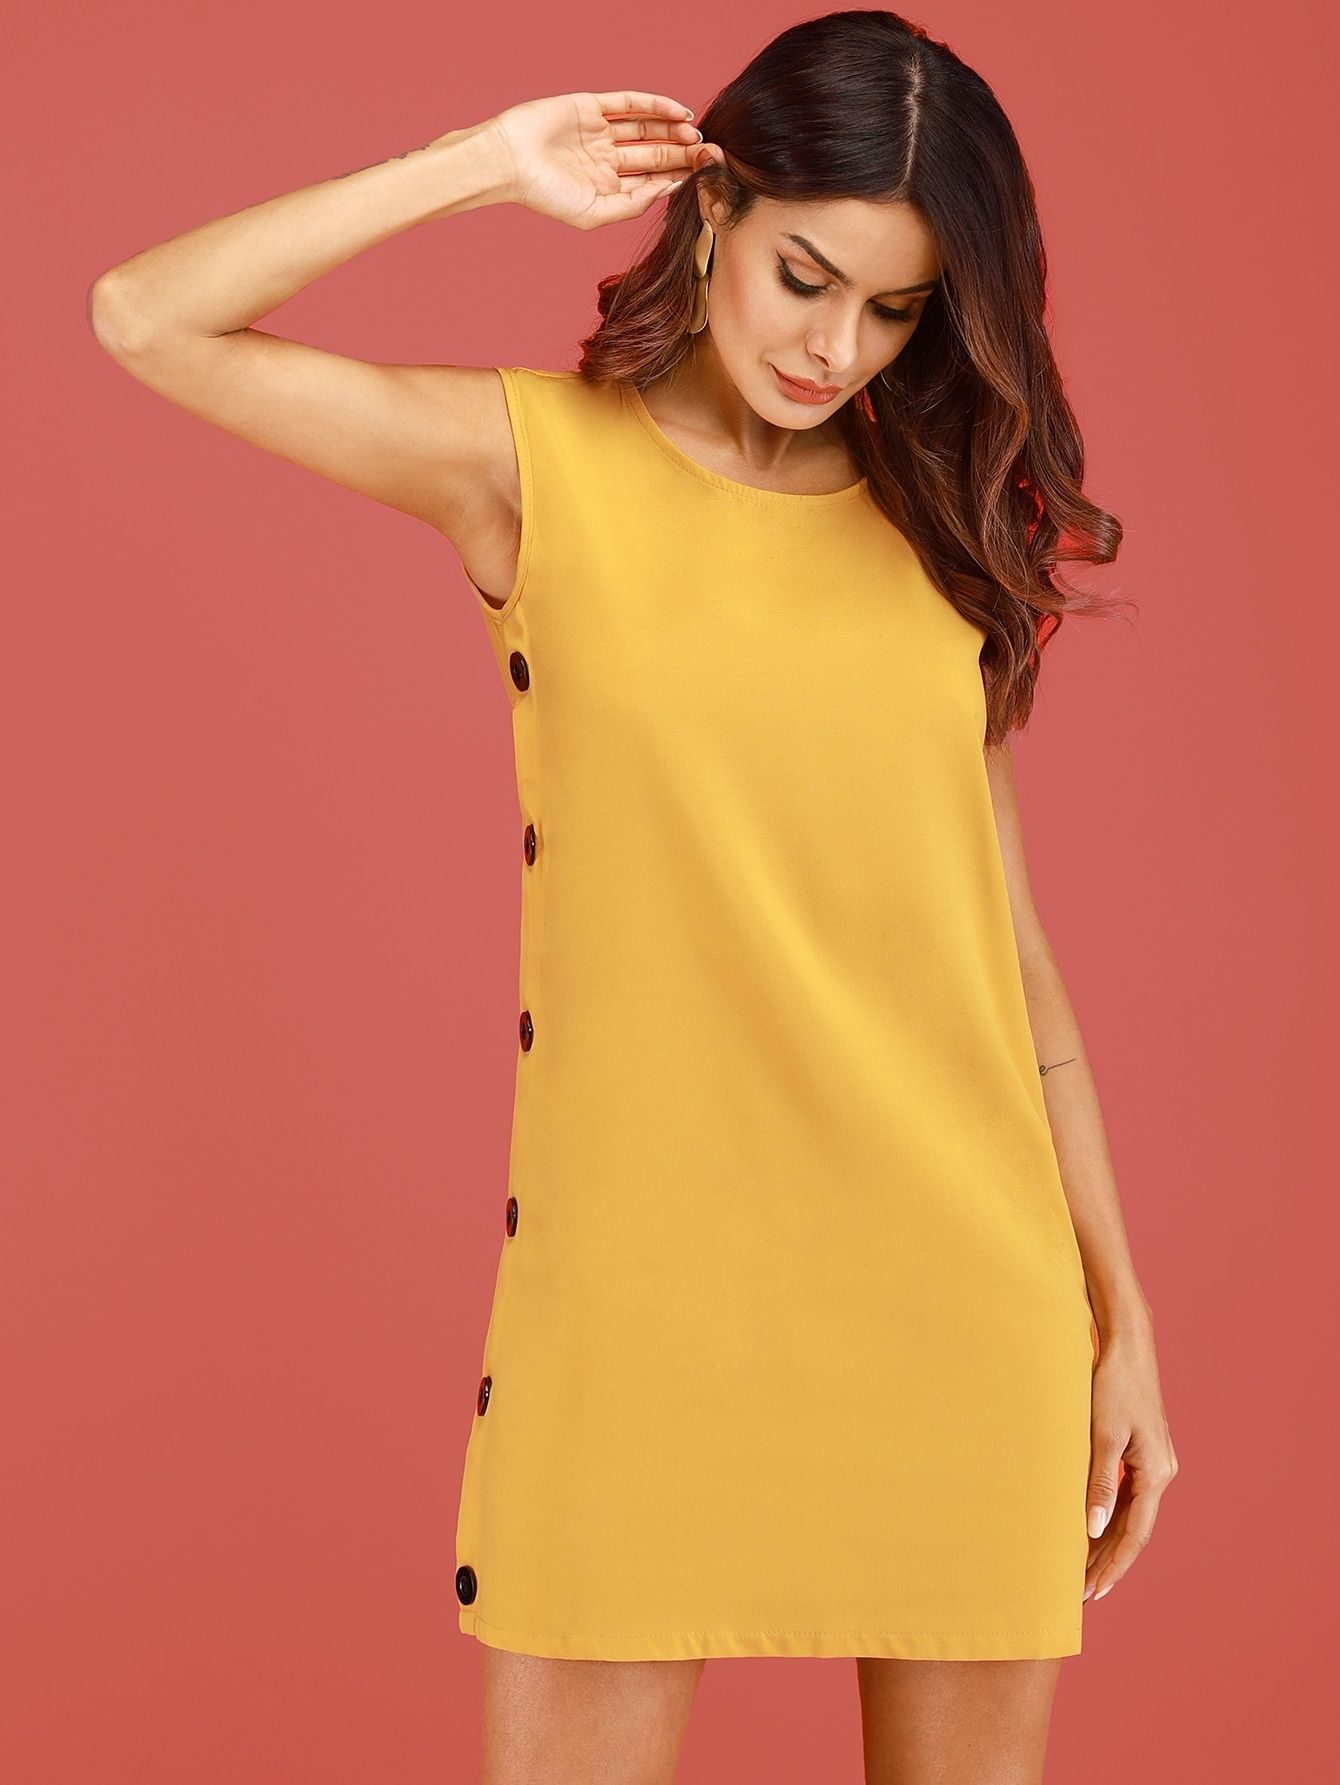 285fde4dd0 Button Side Solid Dress in 2019 | Fashion | Dresses, Dress outfits ...